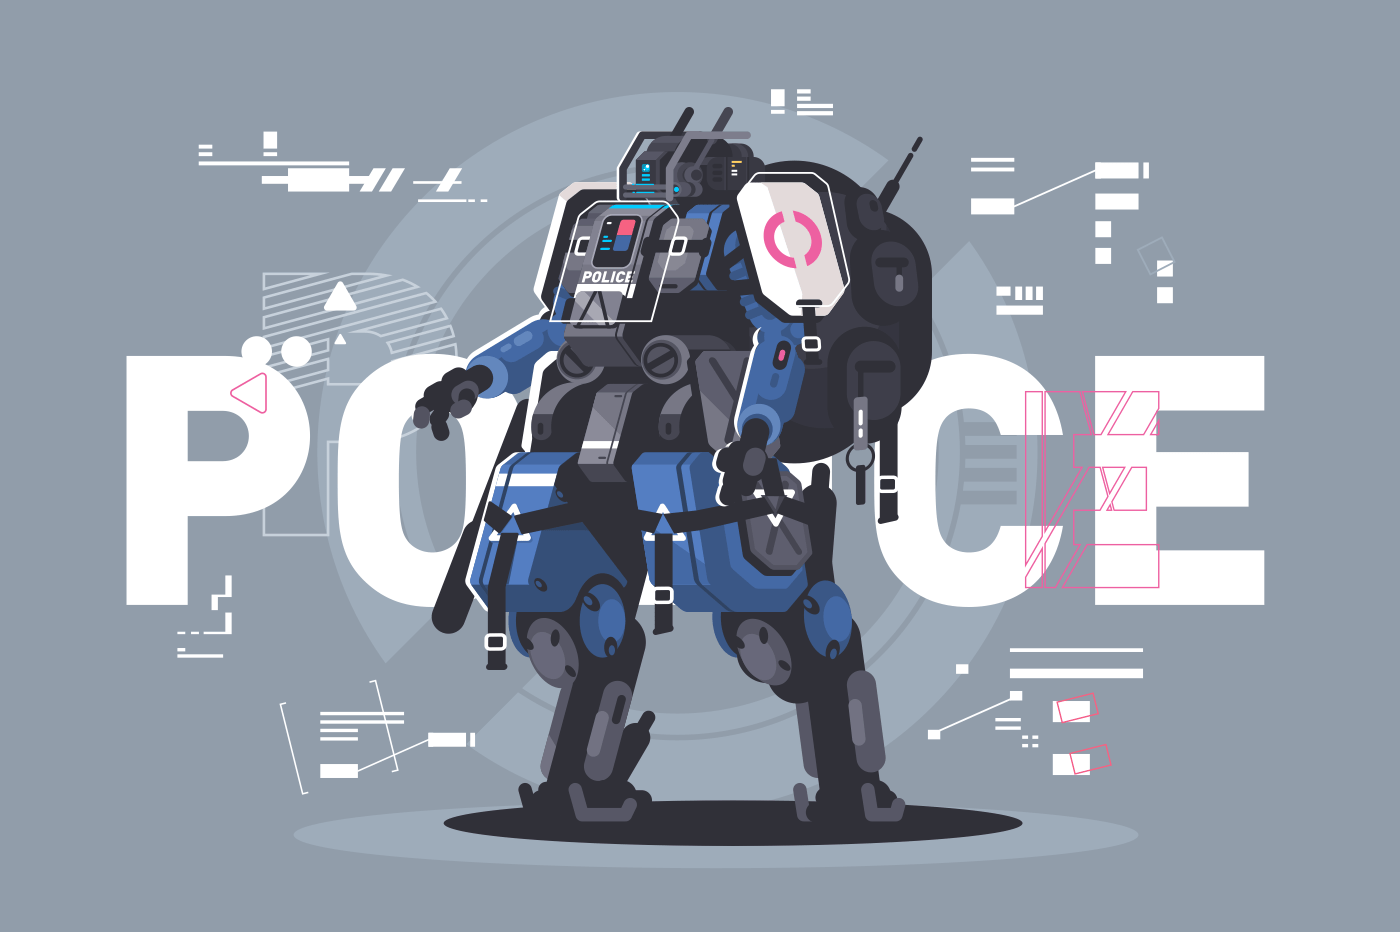 Police drone robot. Patrol cop with artificial intelligence. Vector illustration